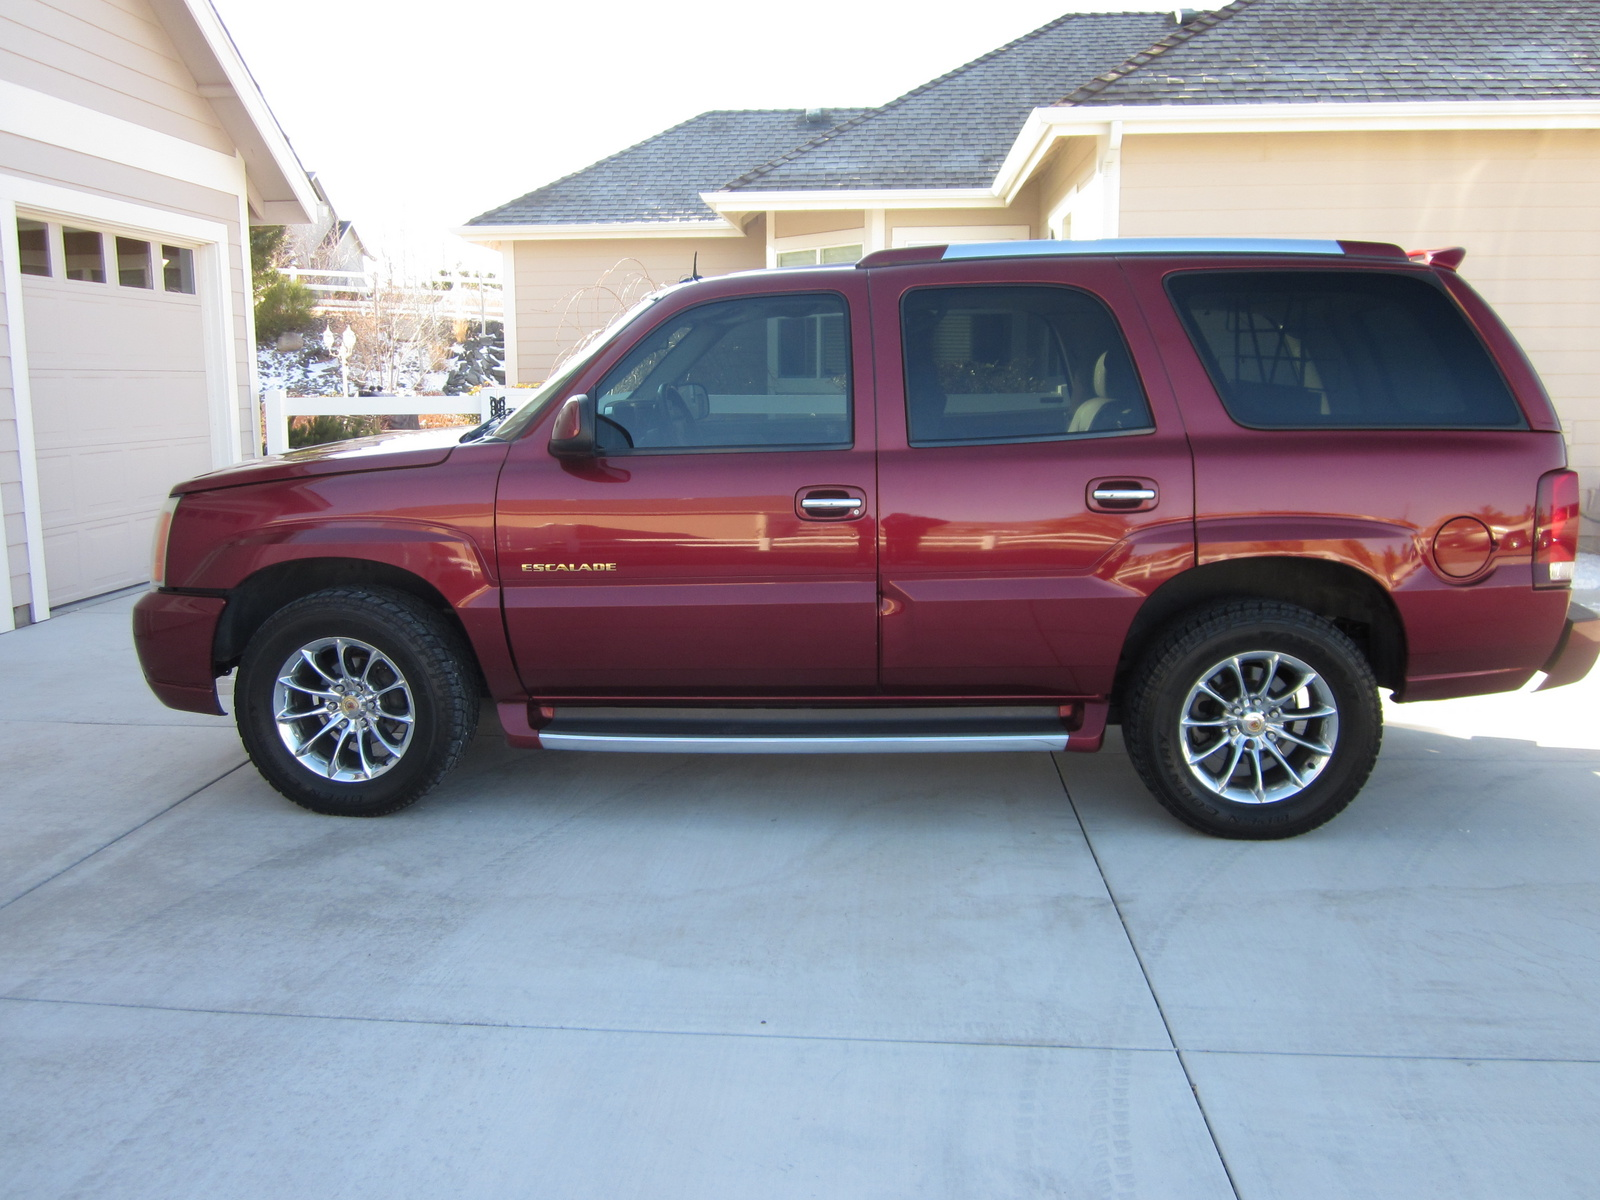 Cadillac Escalade 6.0i 2002 photo - 9